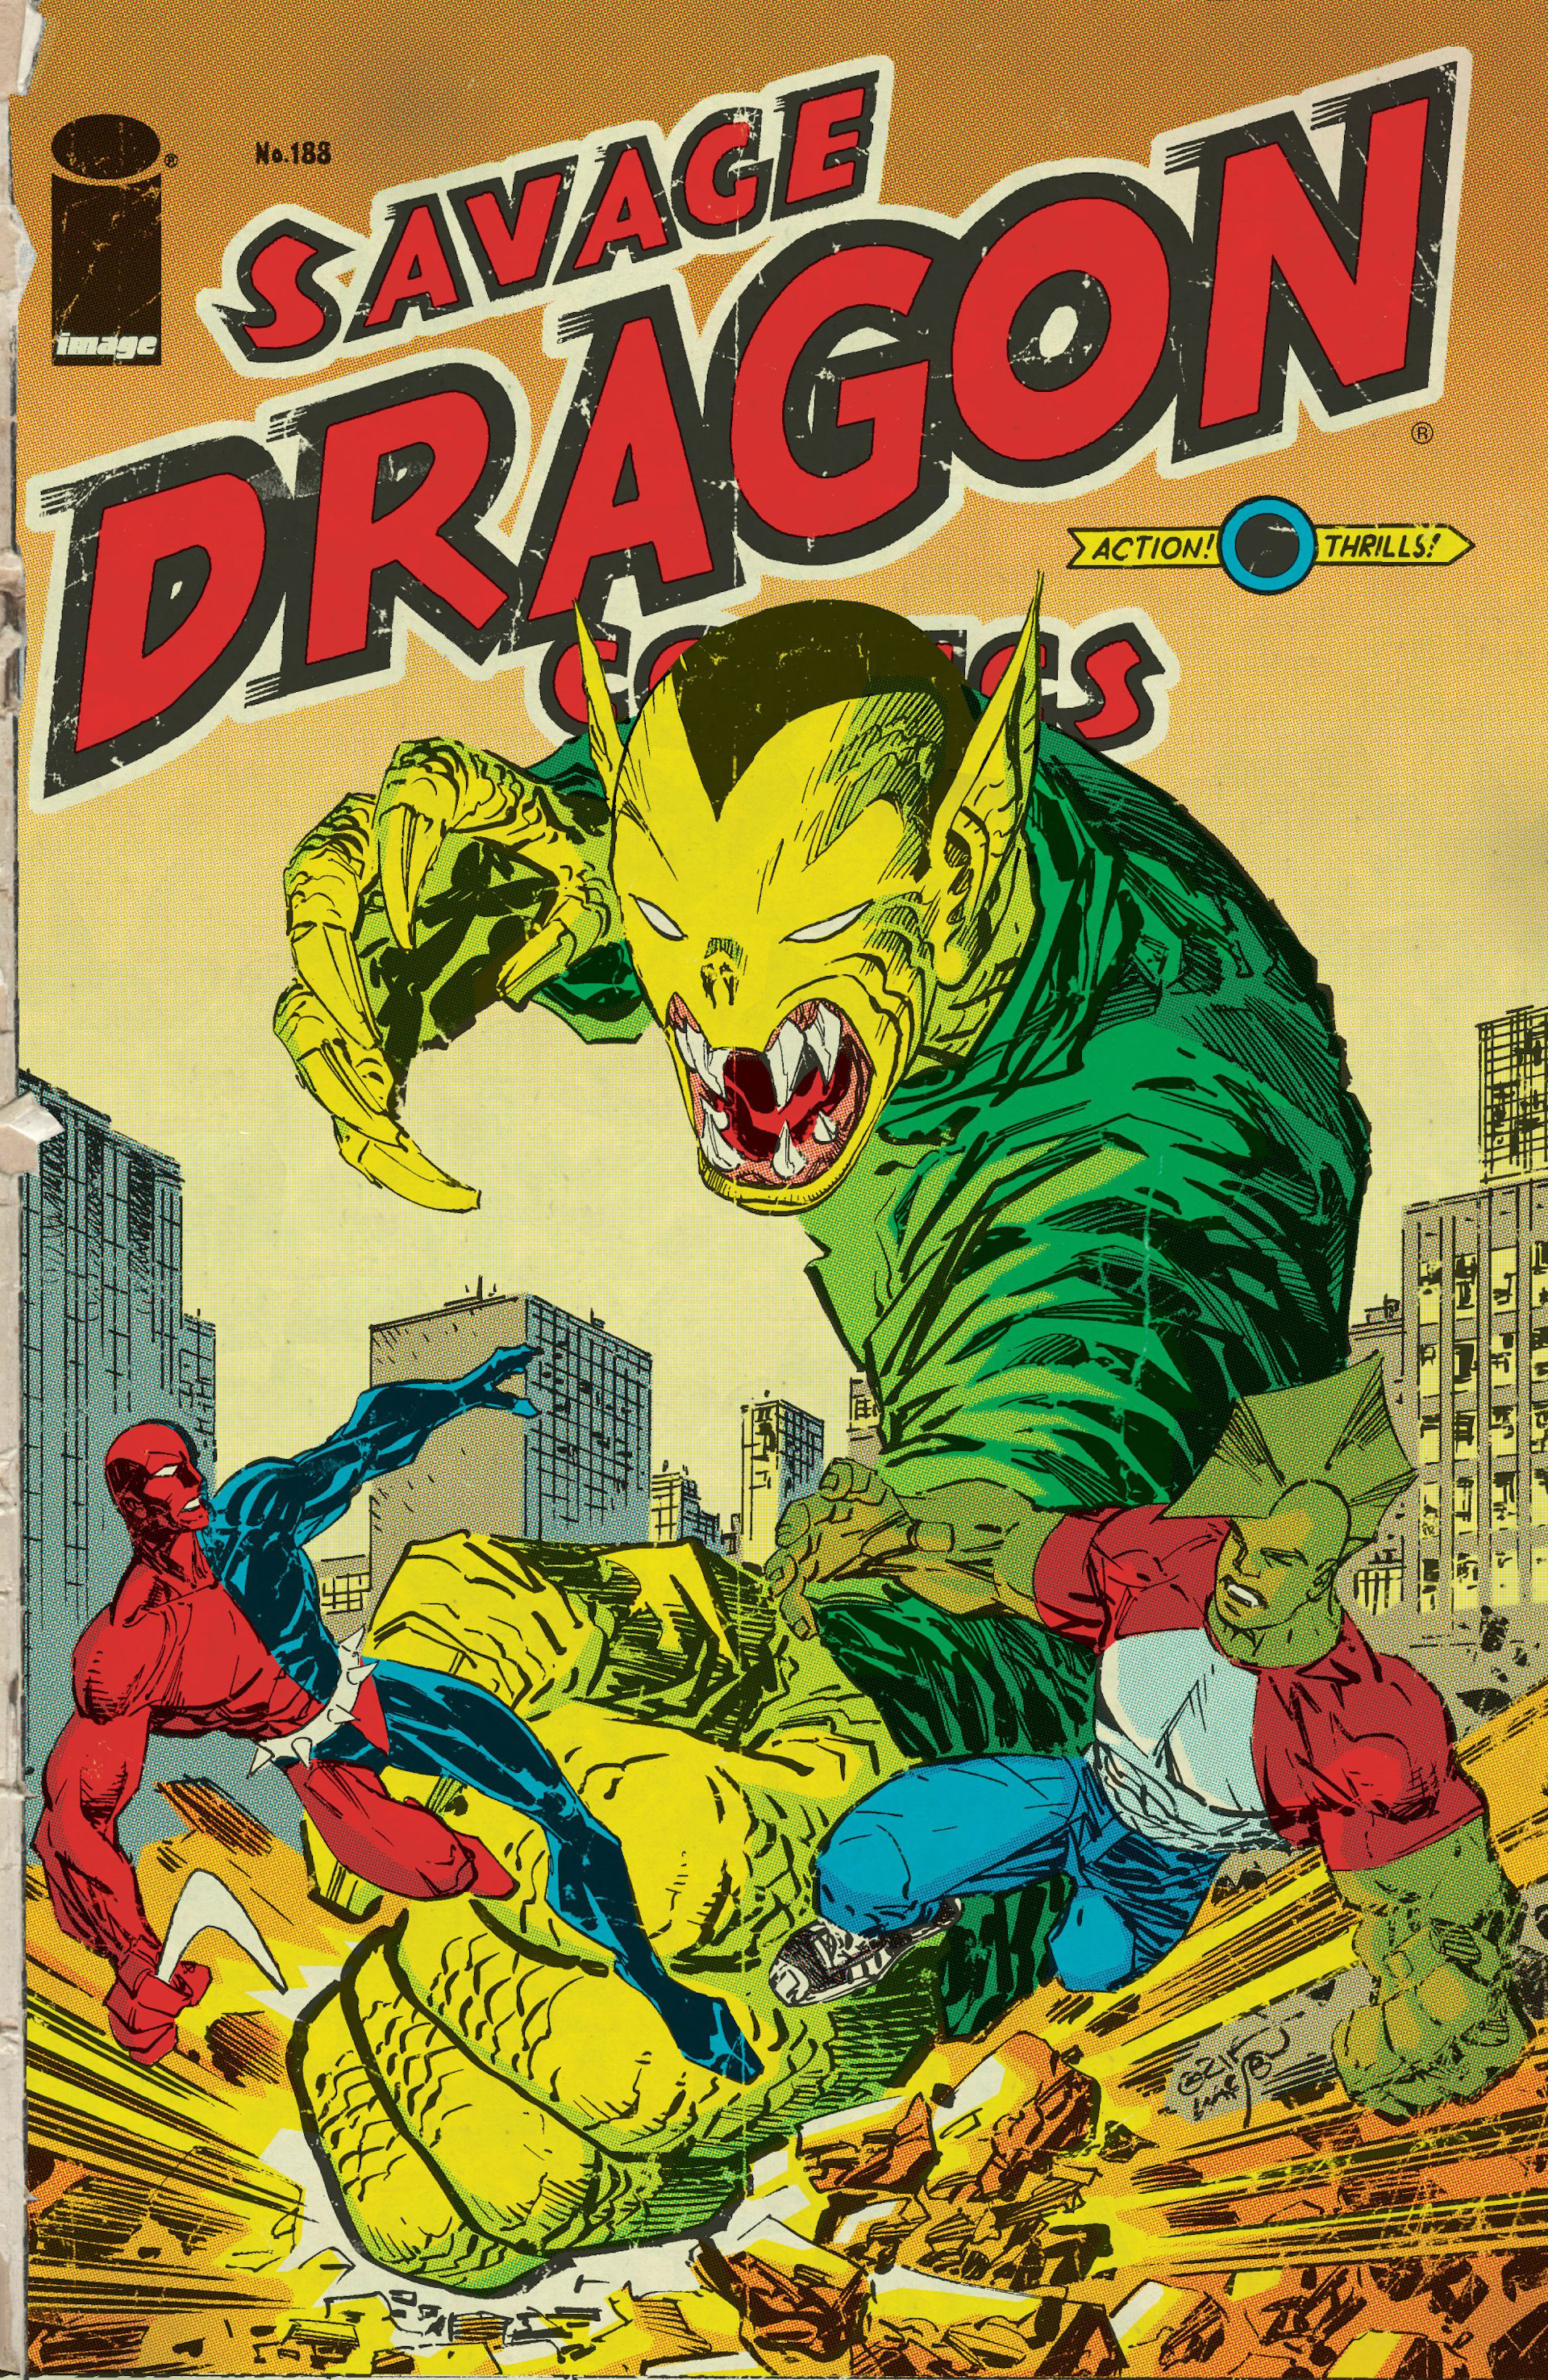 Cover Savage Dragon Vol.2 #188